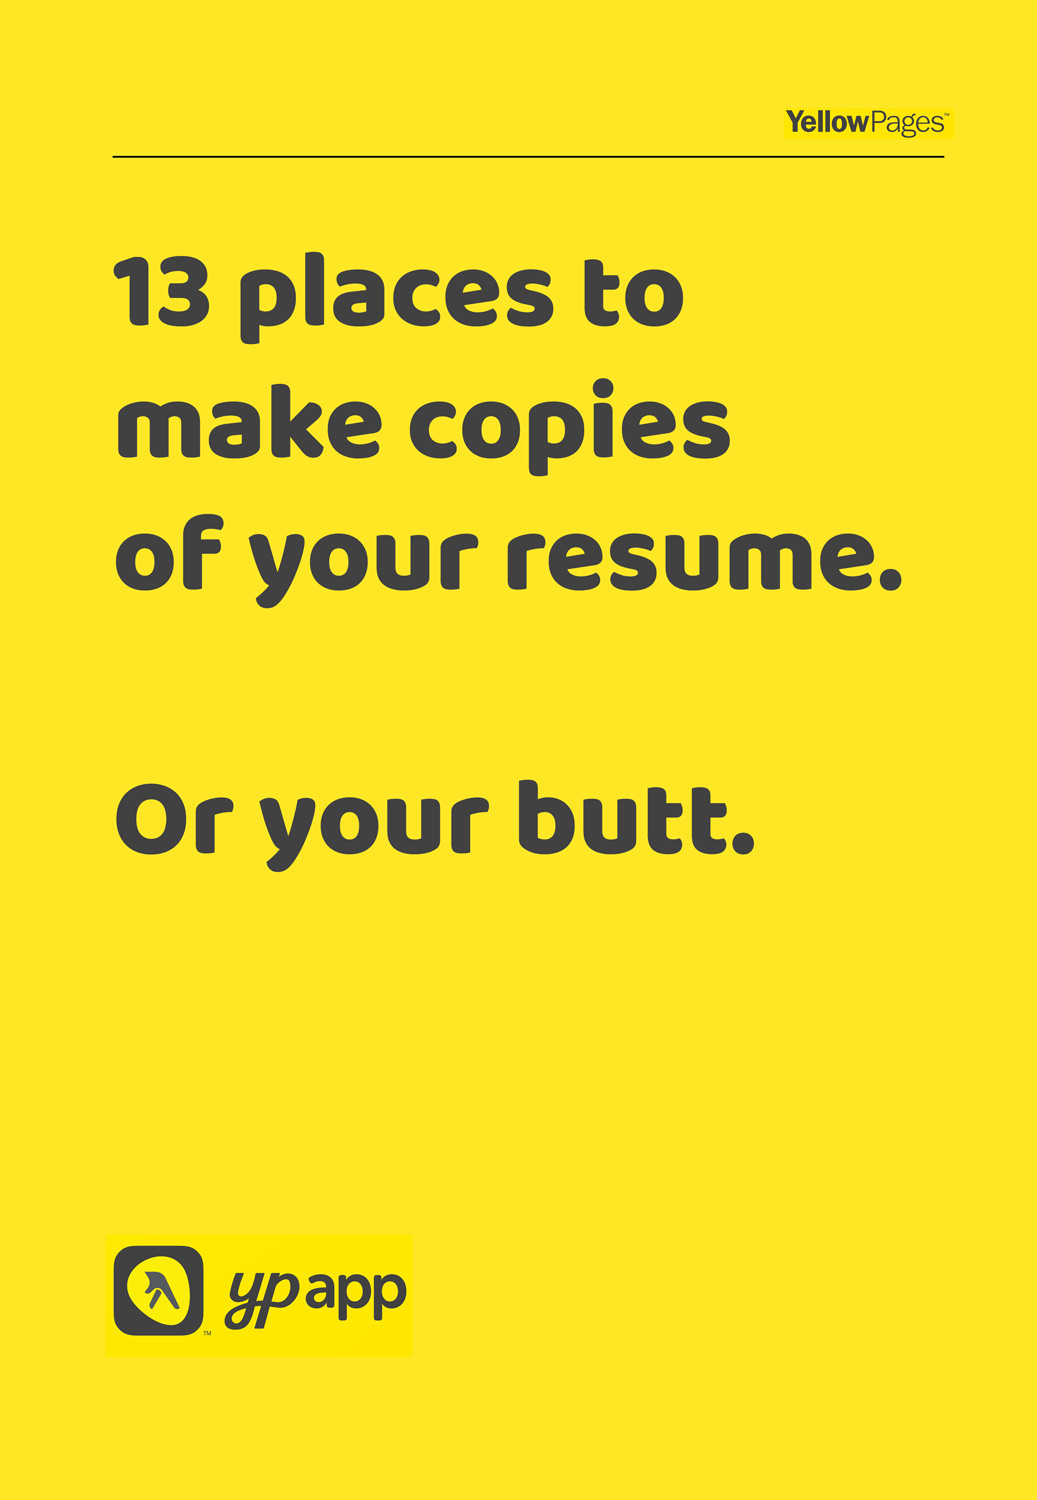 yellow pages ad photocopies